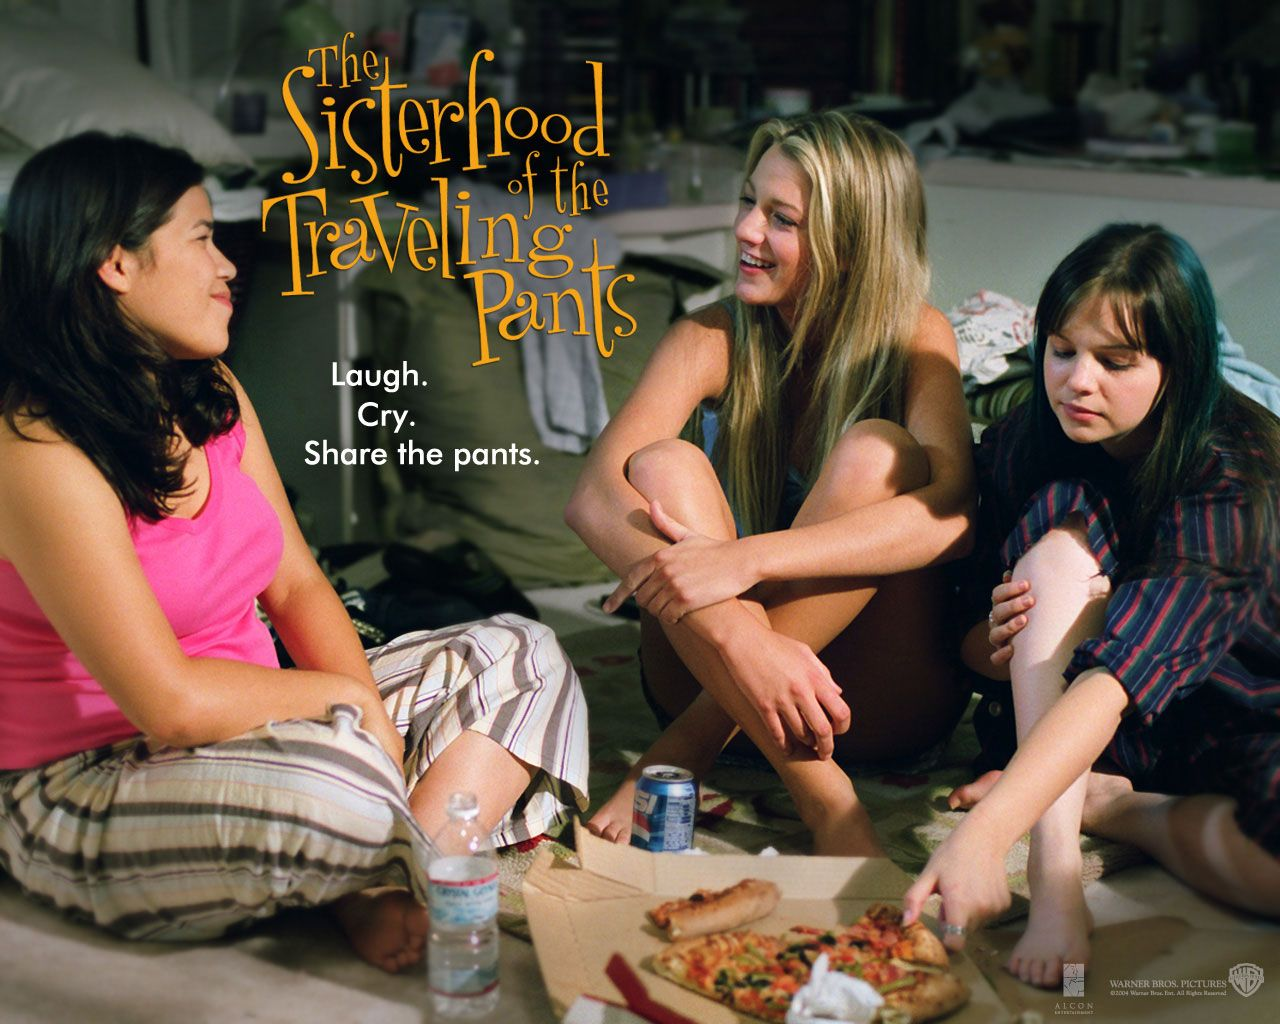 Sisterhood Of The Traveling Pants Quotes About Friendship Watch Streaming Hd The Sisterhood Of The Travelling Pants